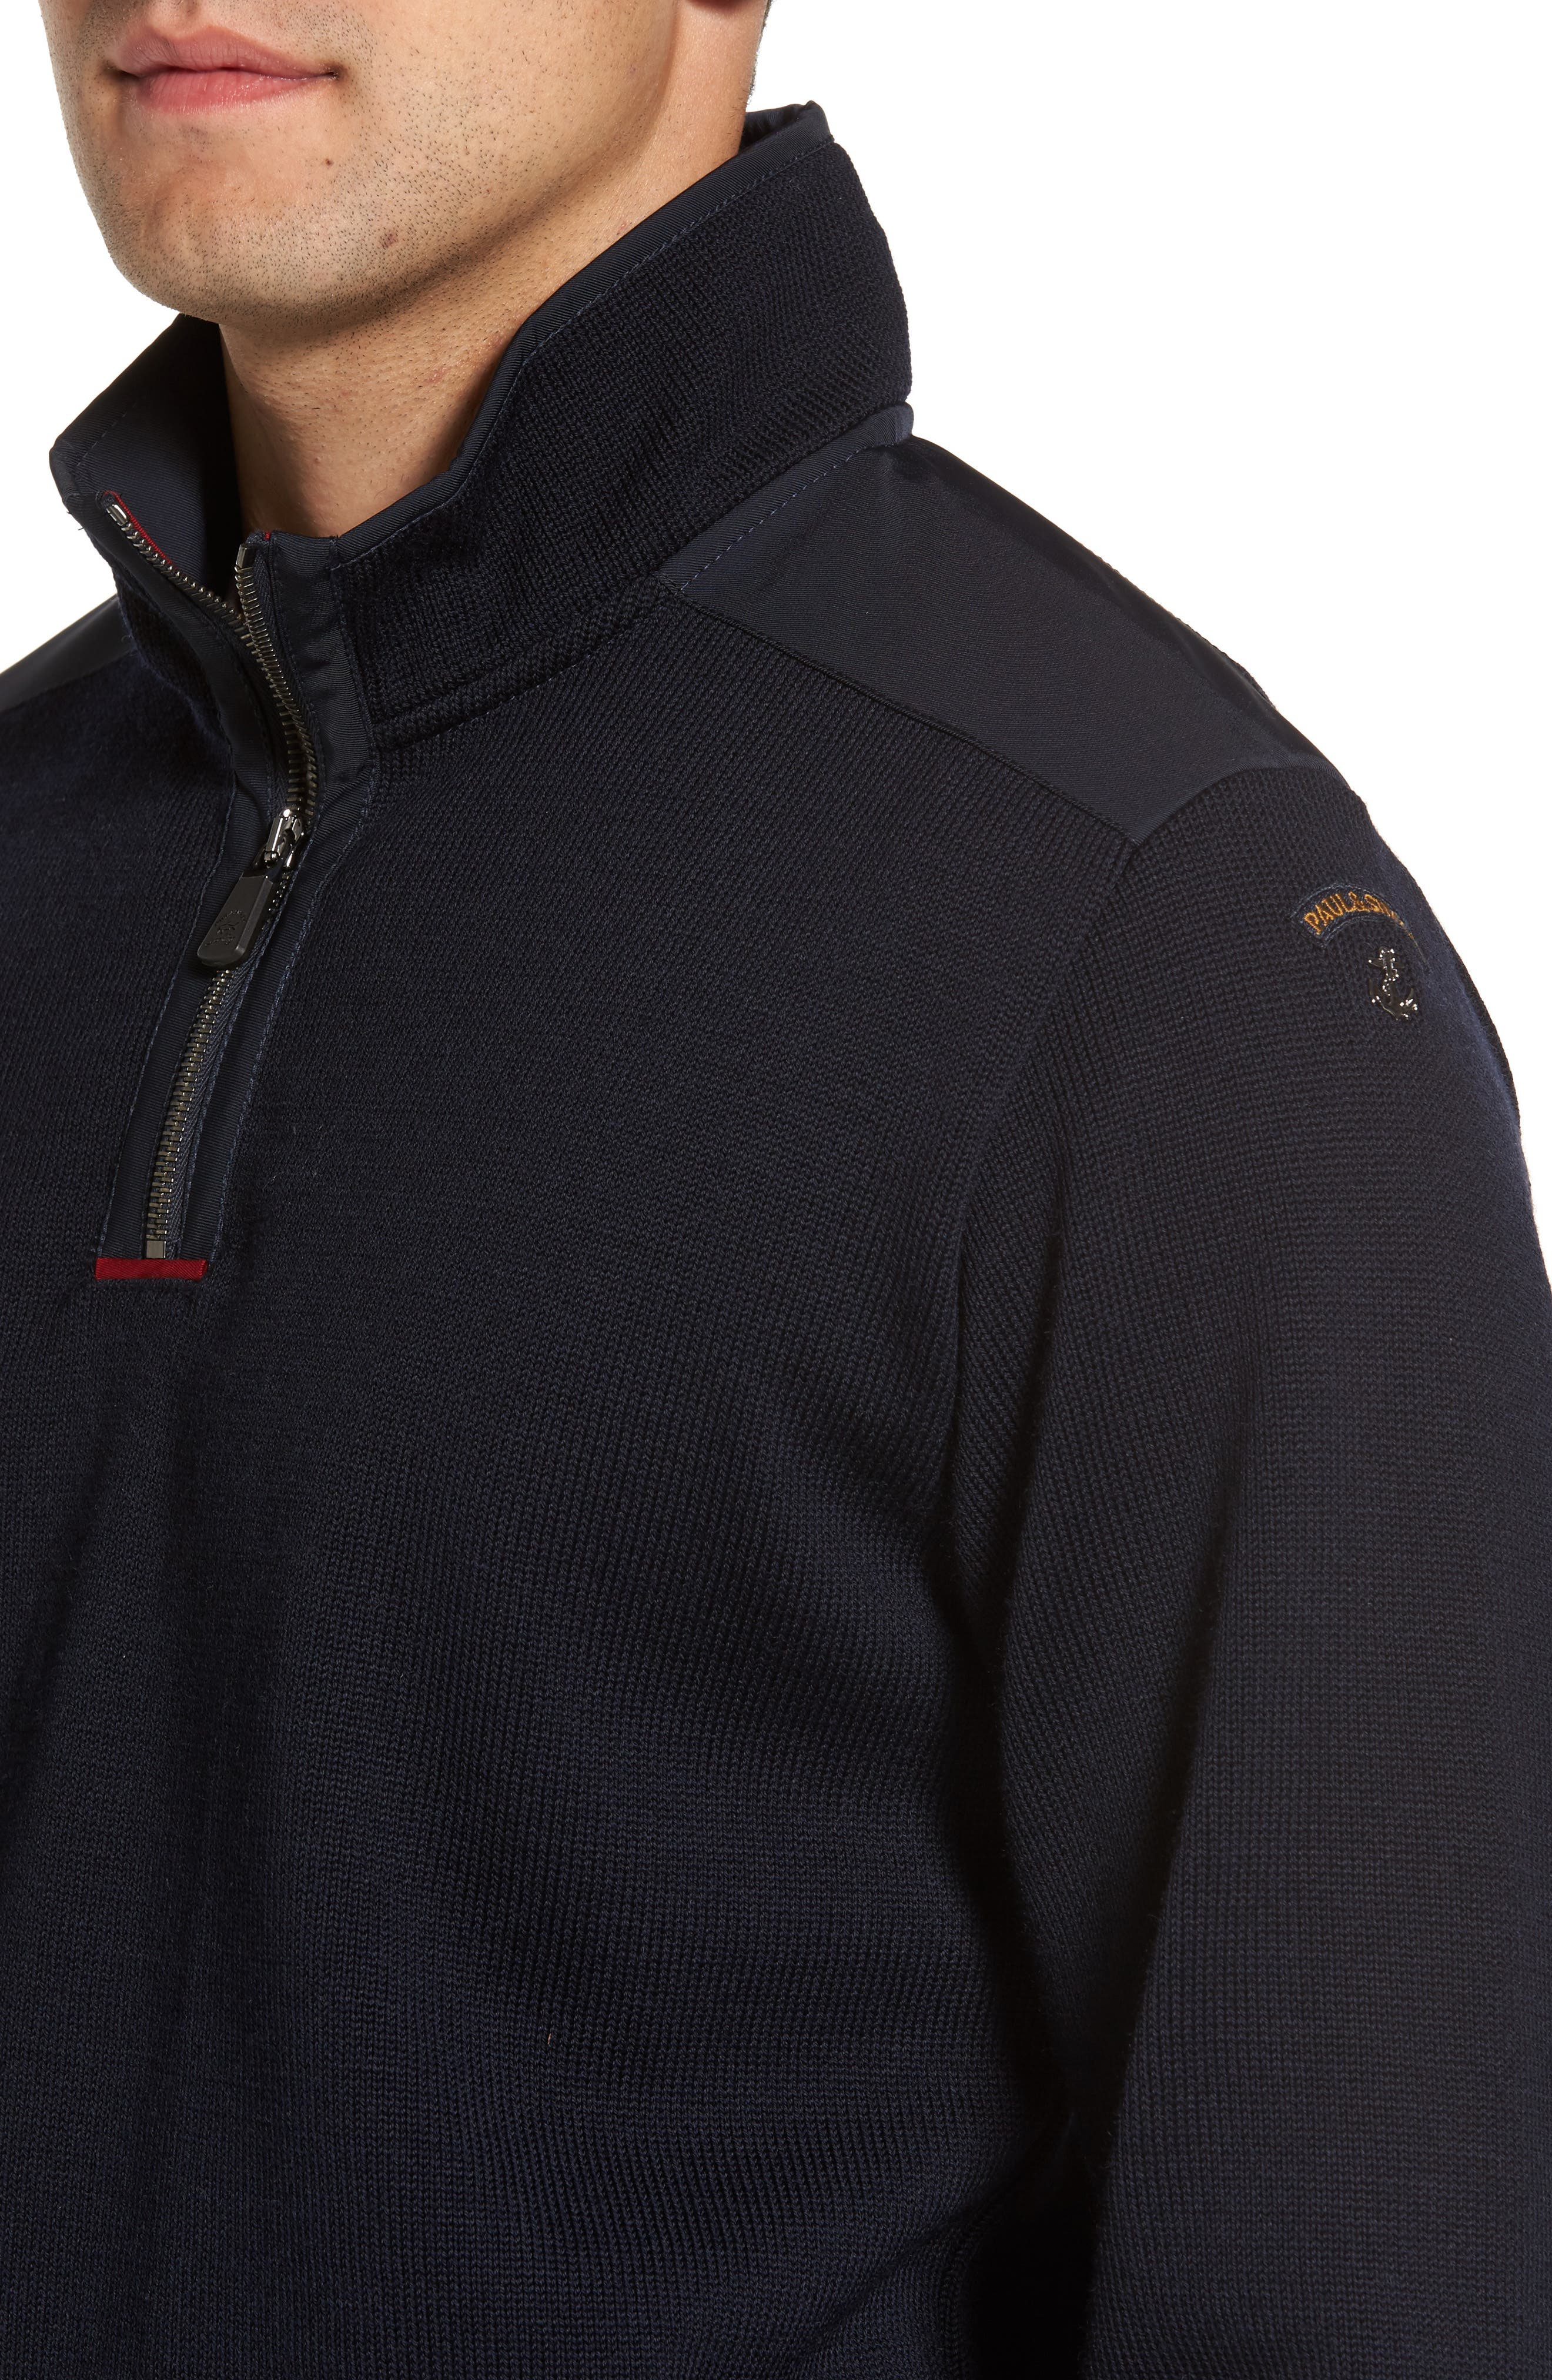 Paul&Shark Bretagne Quarter Zip Wool Sweater,                             Alternate thumbnail 4, color,                             Navy